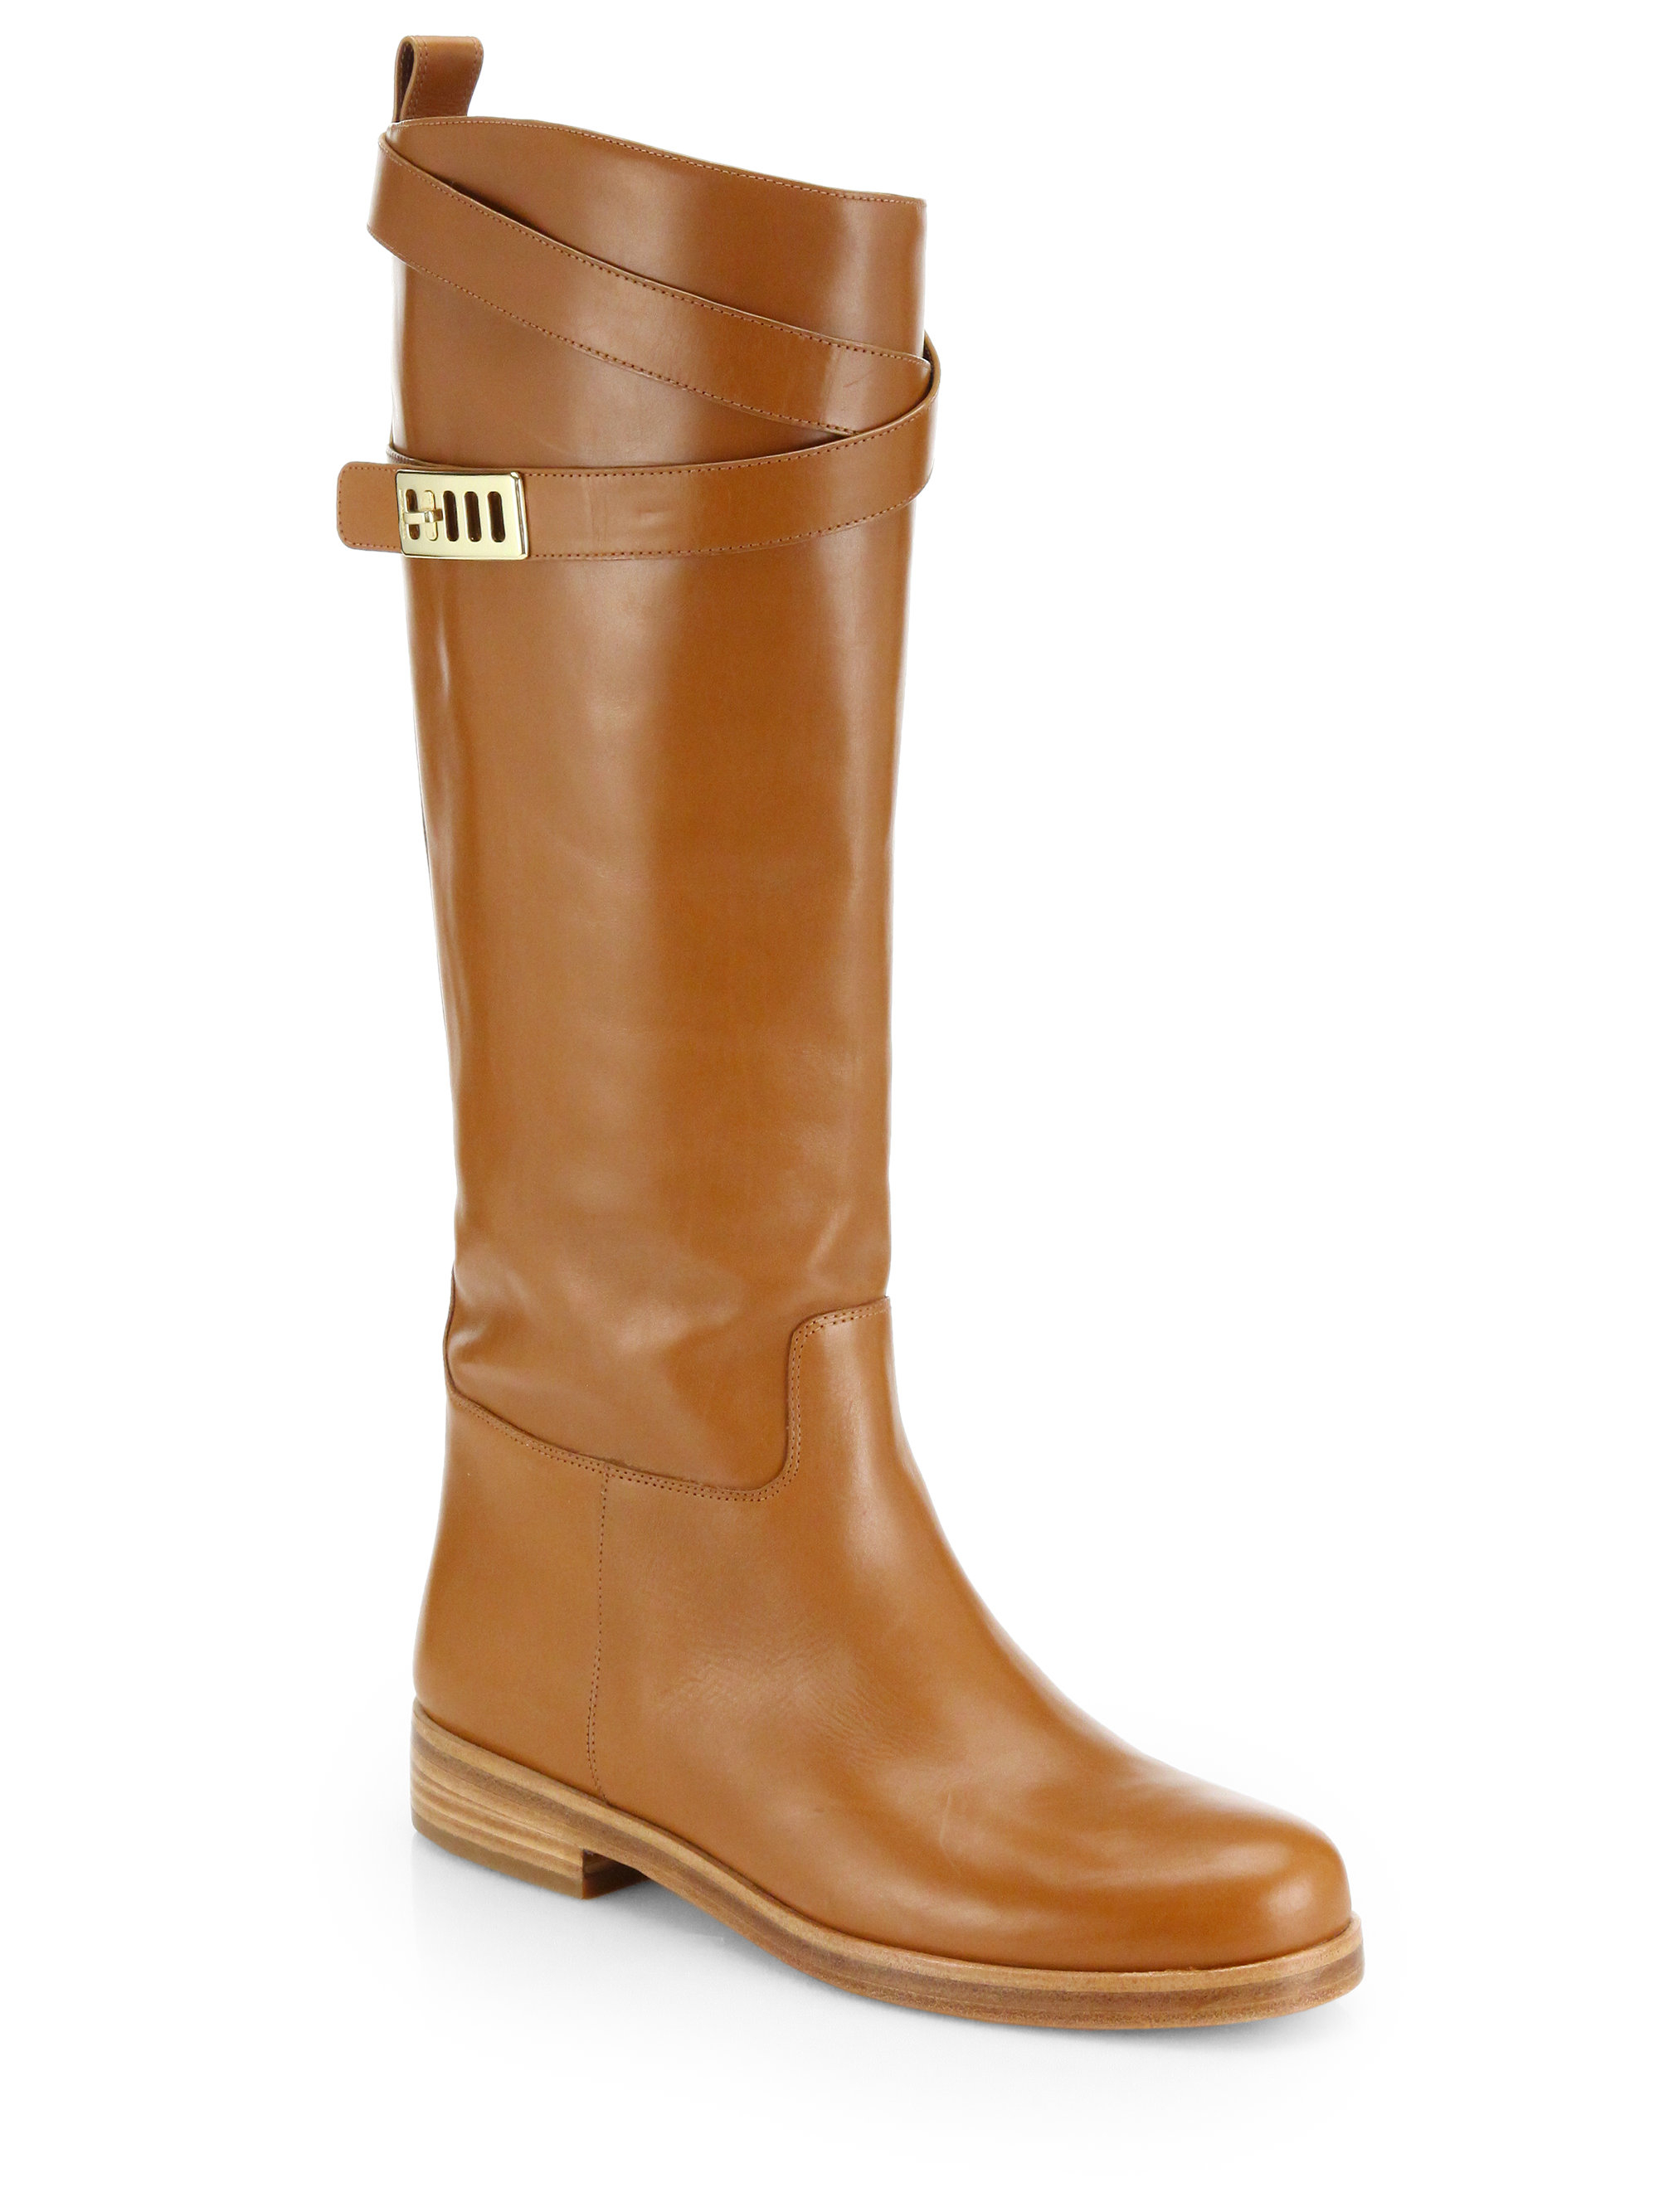 michael kors brynlee leather knee high boots in brown lyst. Black Bedroom Furniture Sets. Home Design Ideas